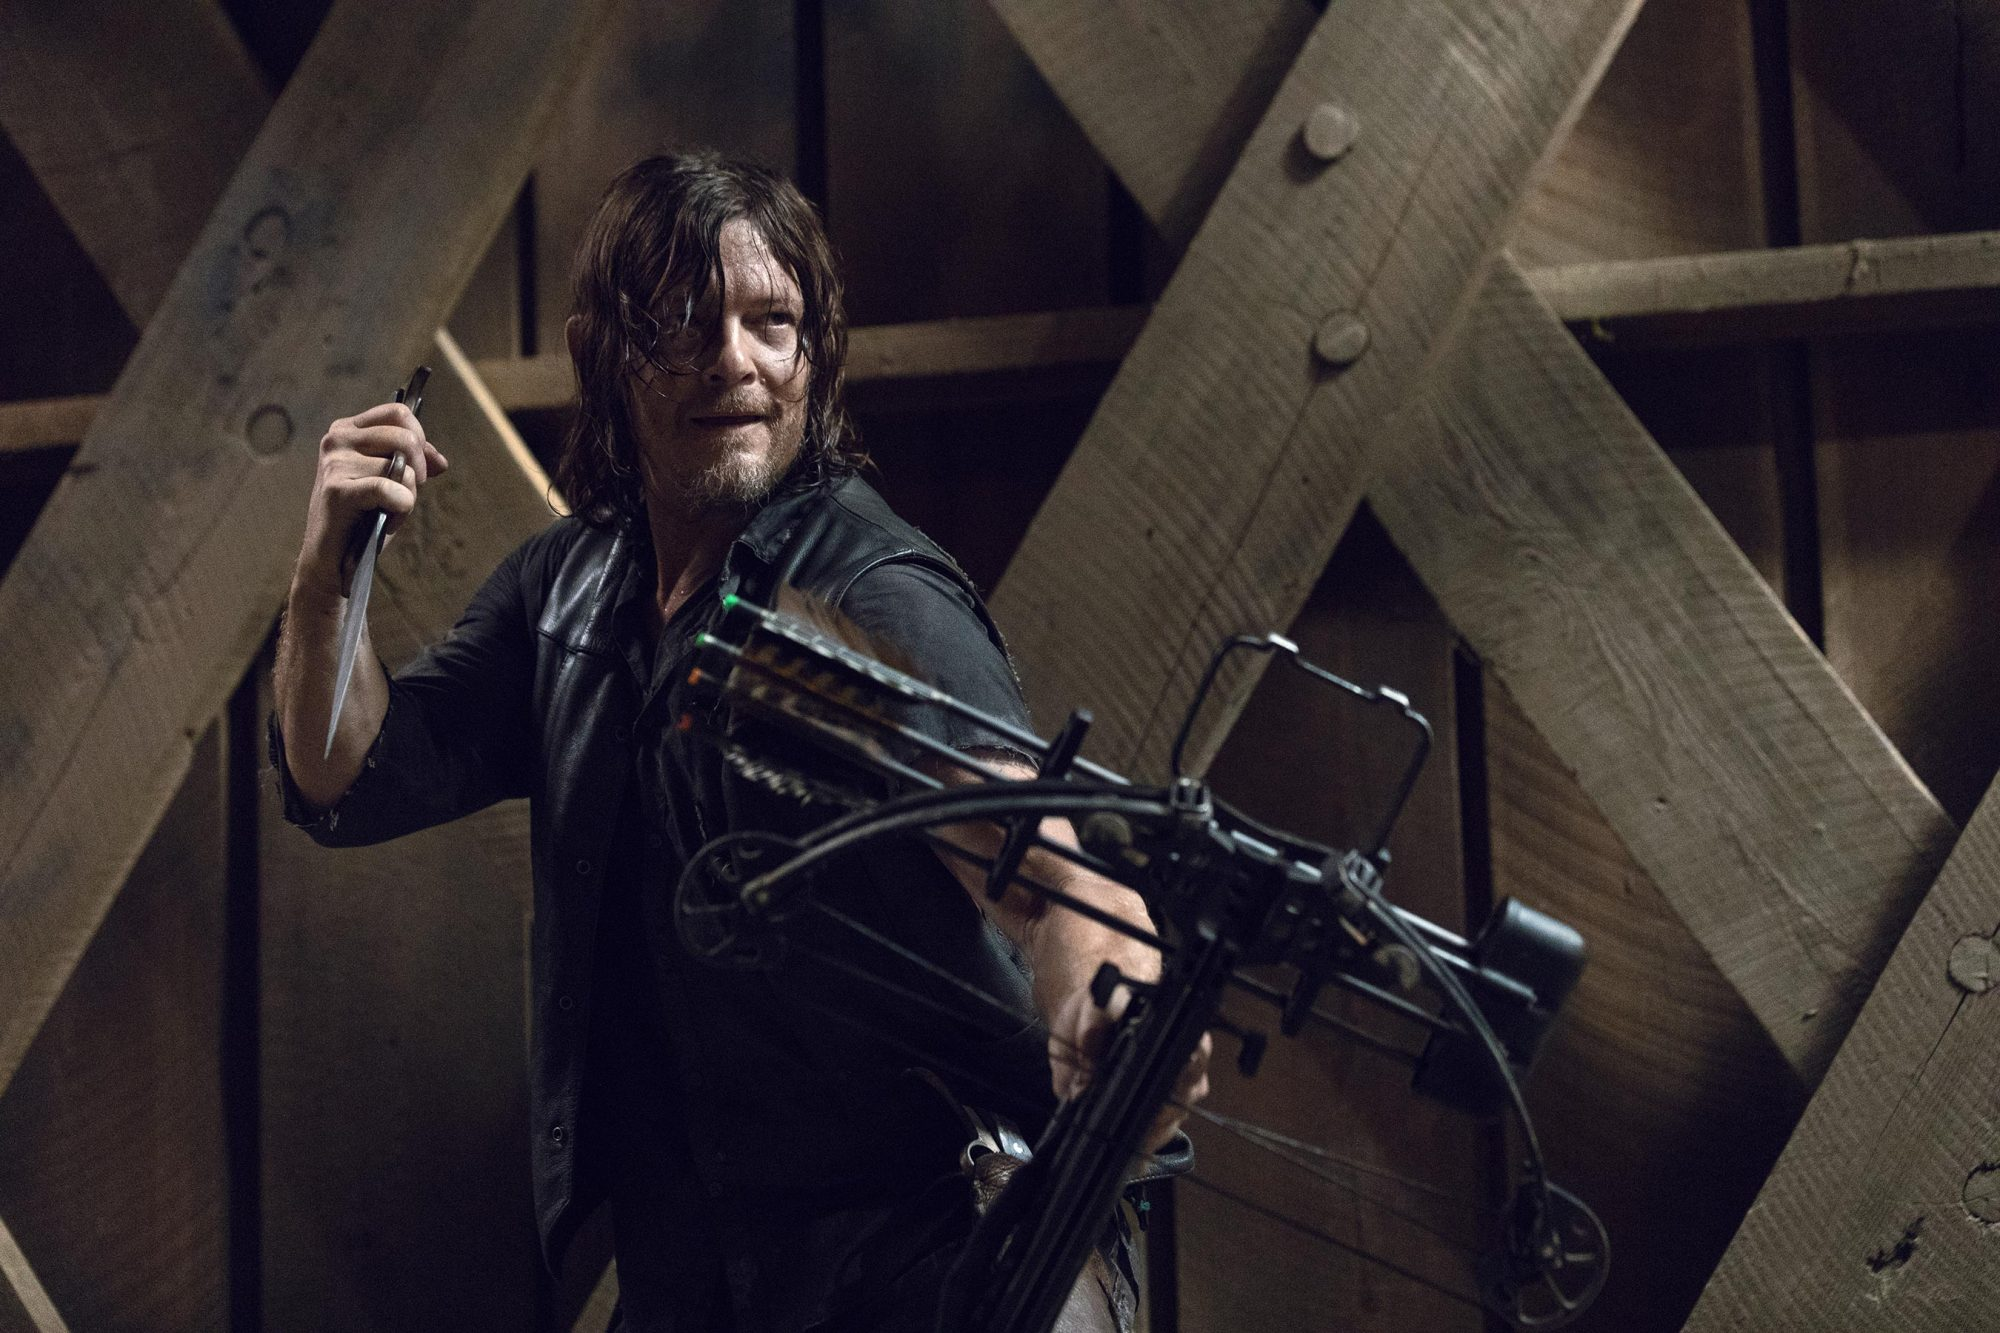 Norman Reedus as Daryl Dixon